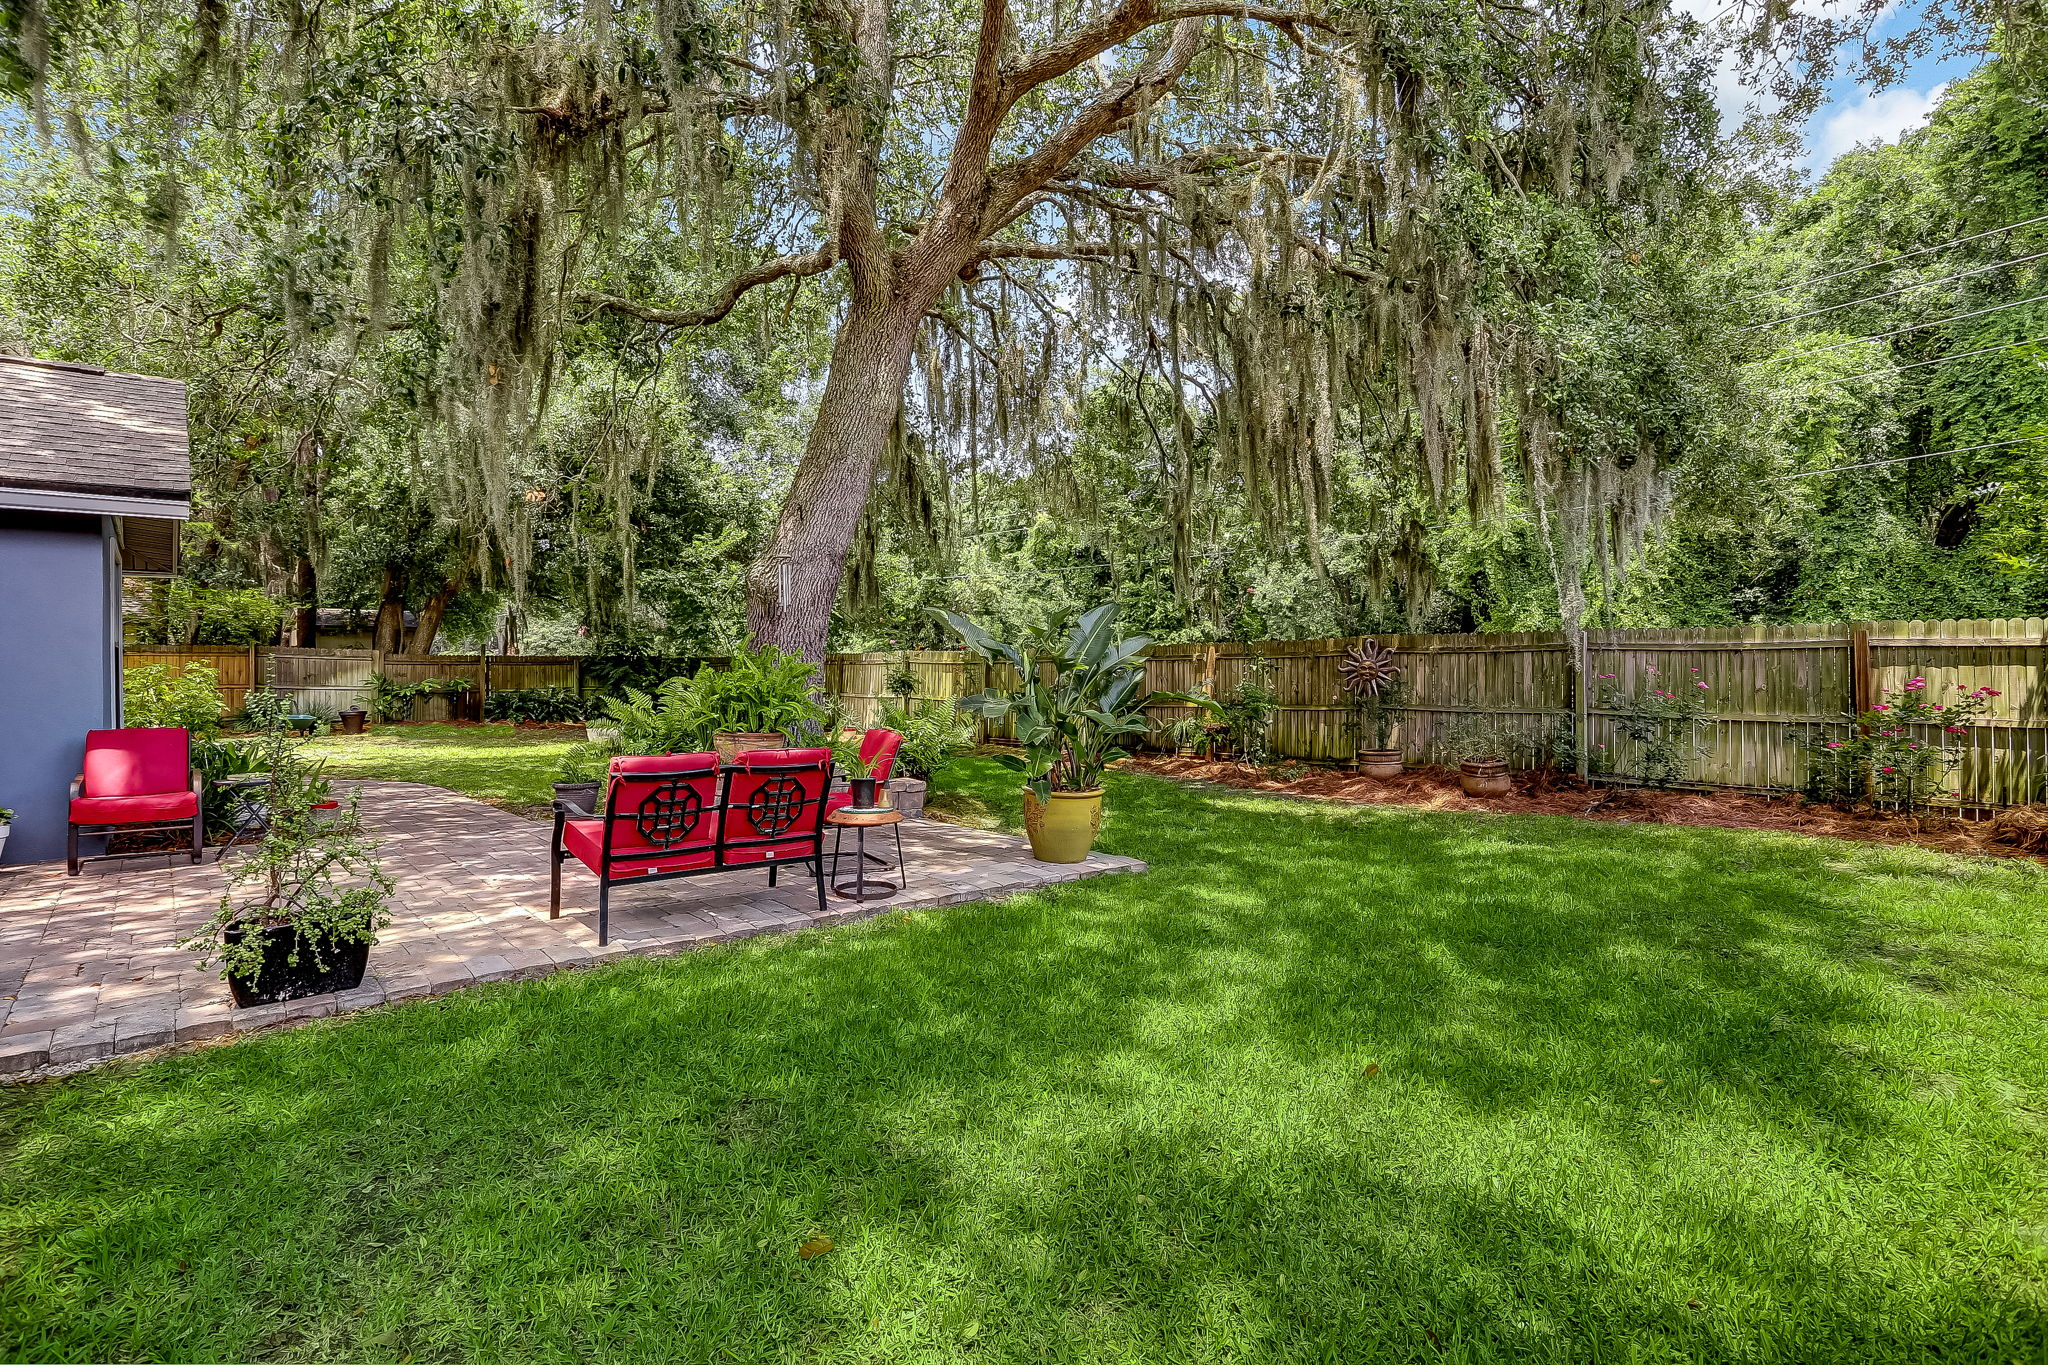 Nice flat lot ready for your outdoor living!